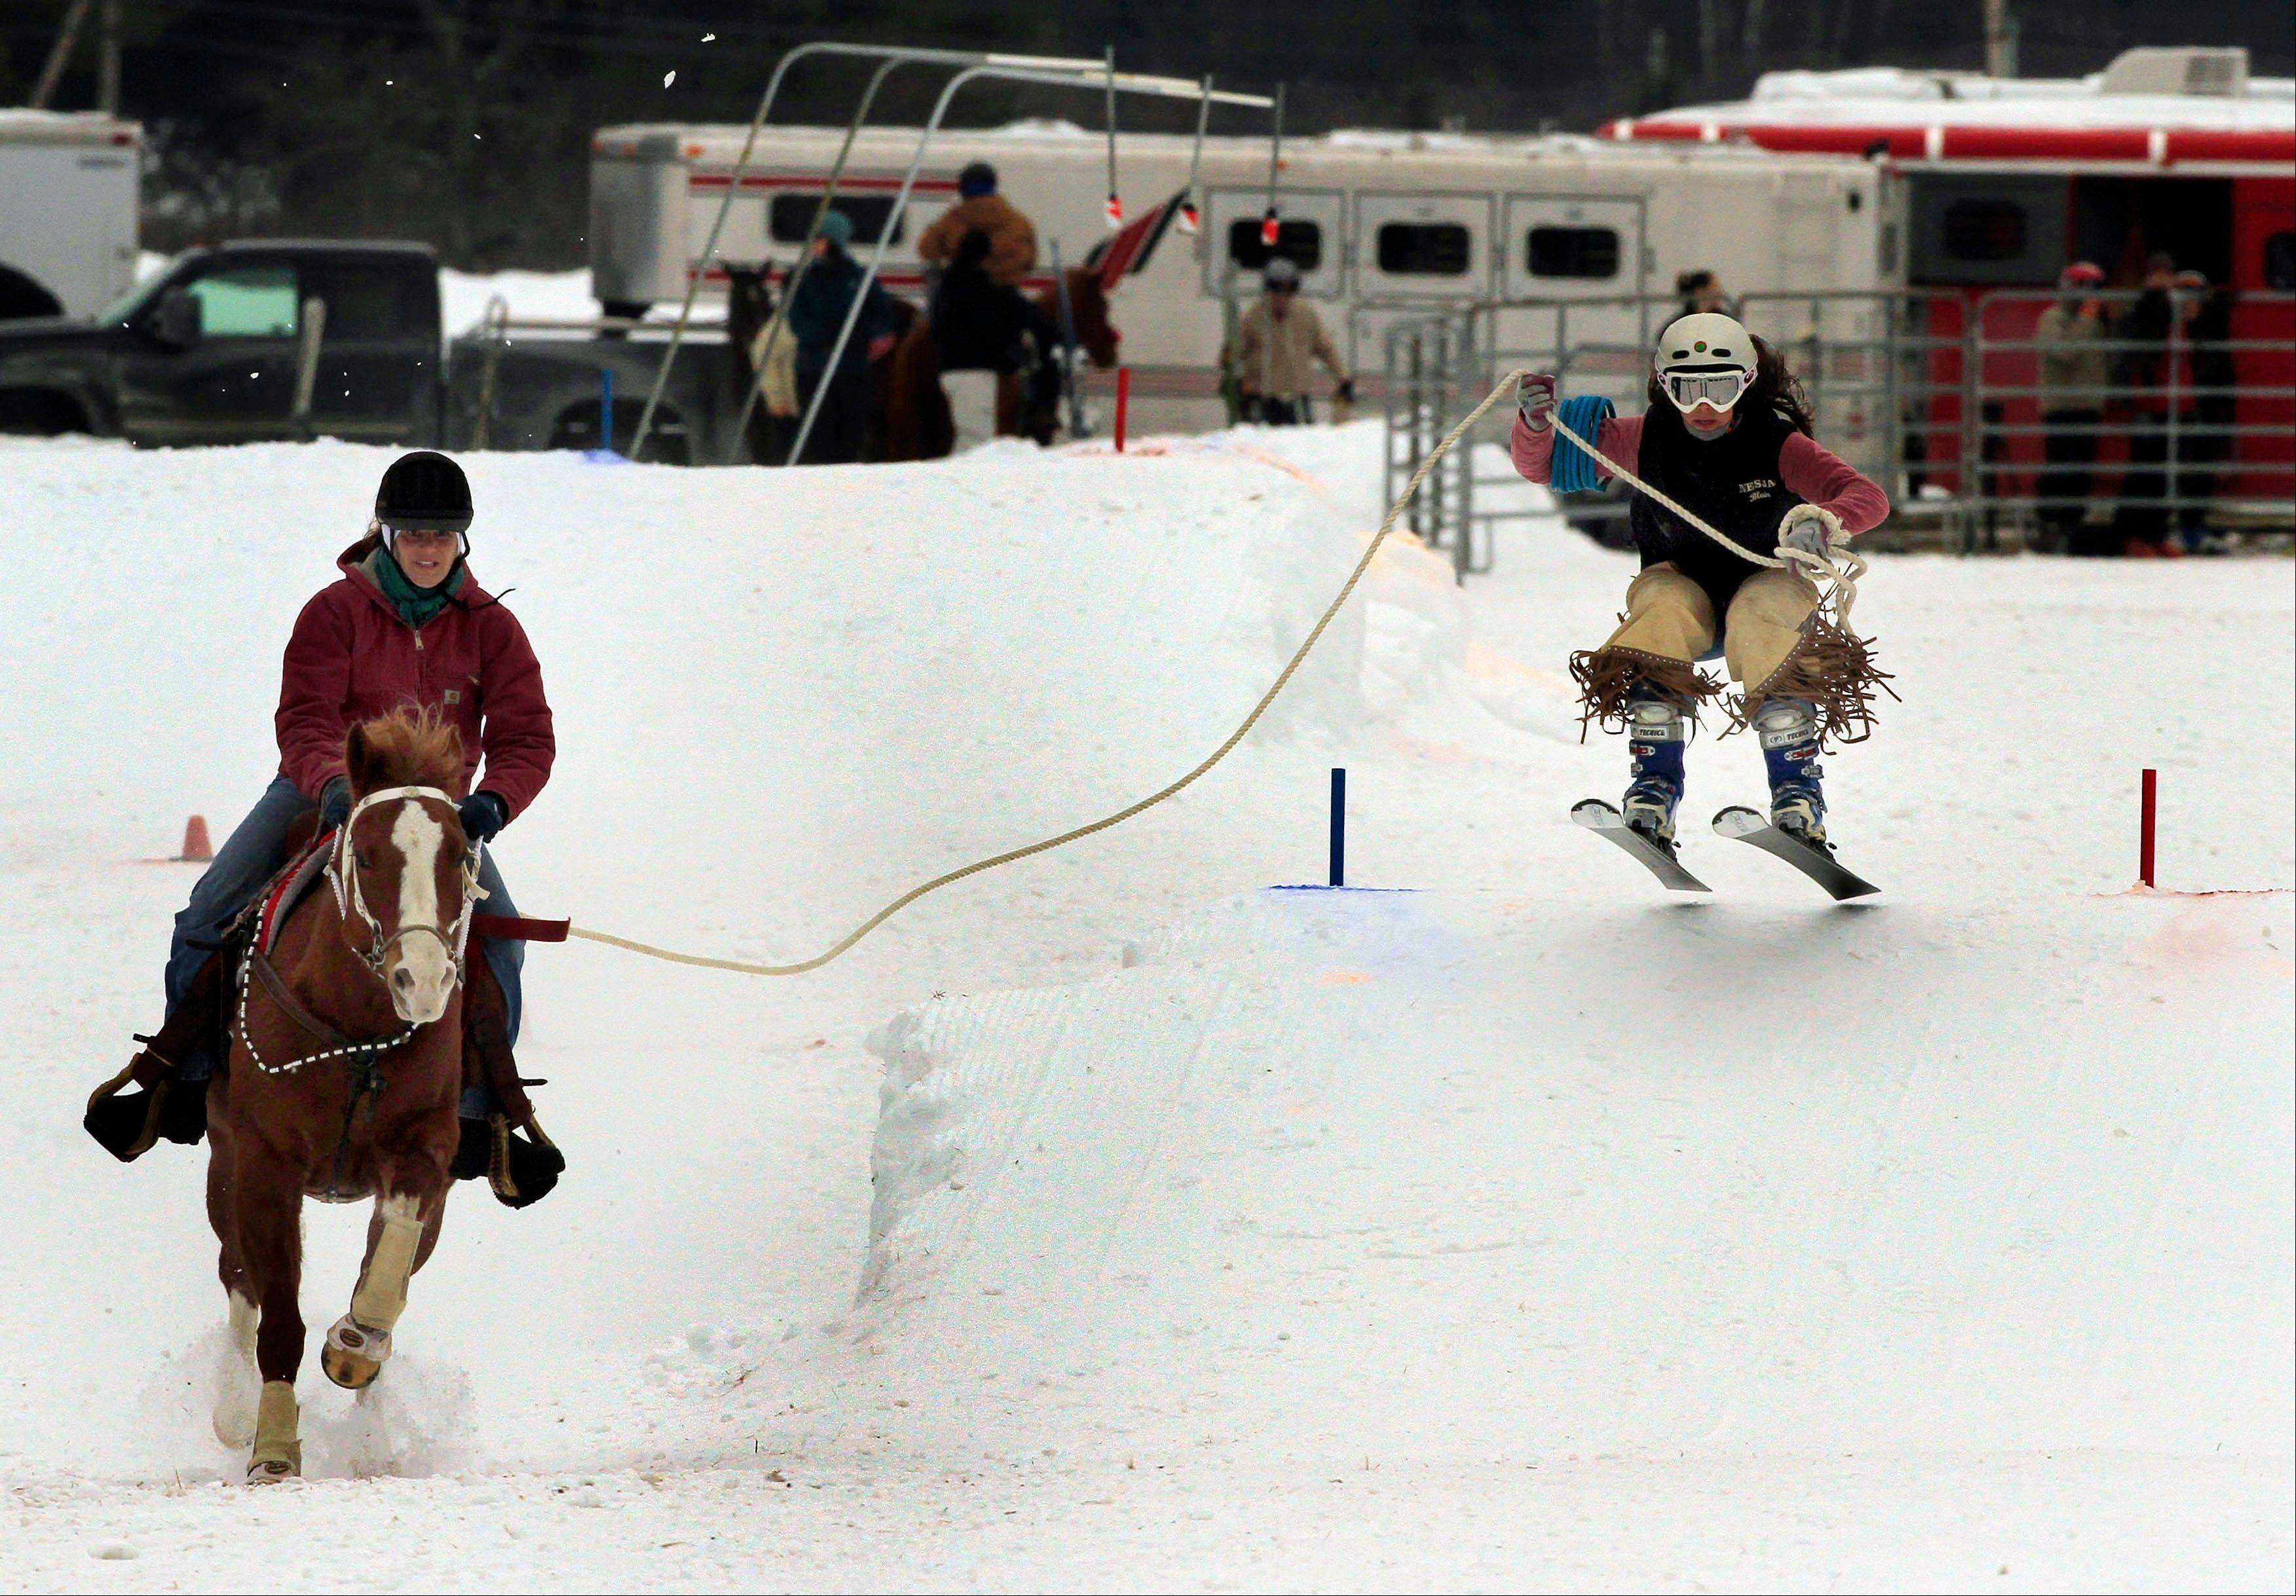 Skier Blair Weathers of Wilmot, N.H., flies off a jump as he is pulled by Summertime and rider Jennifer Elliot during the Skijoring competition at the Newport Winter Carnival in Newport, N.H. Skijoring is a sport in which a skier is pulled over snow or ice, generally by a horse.